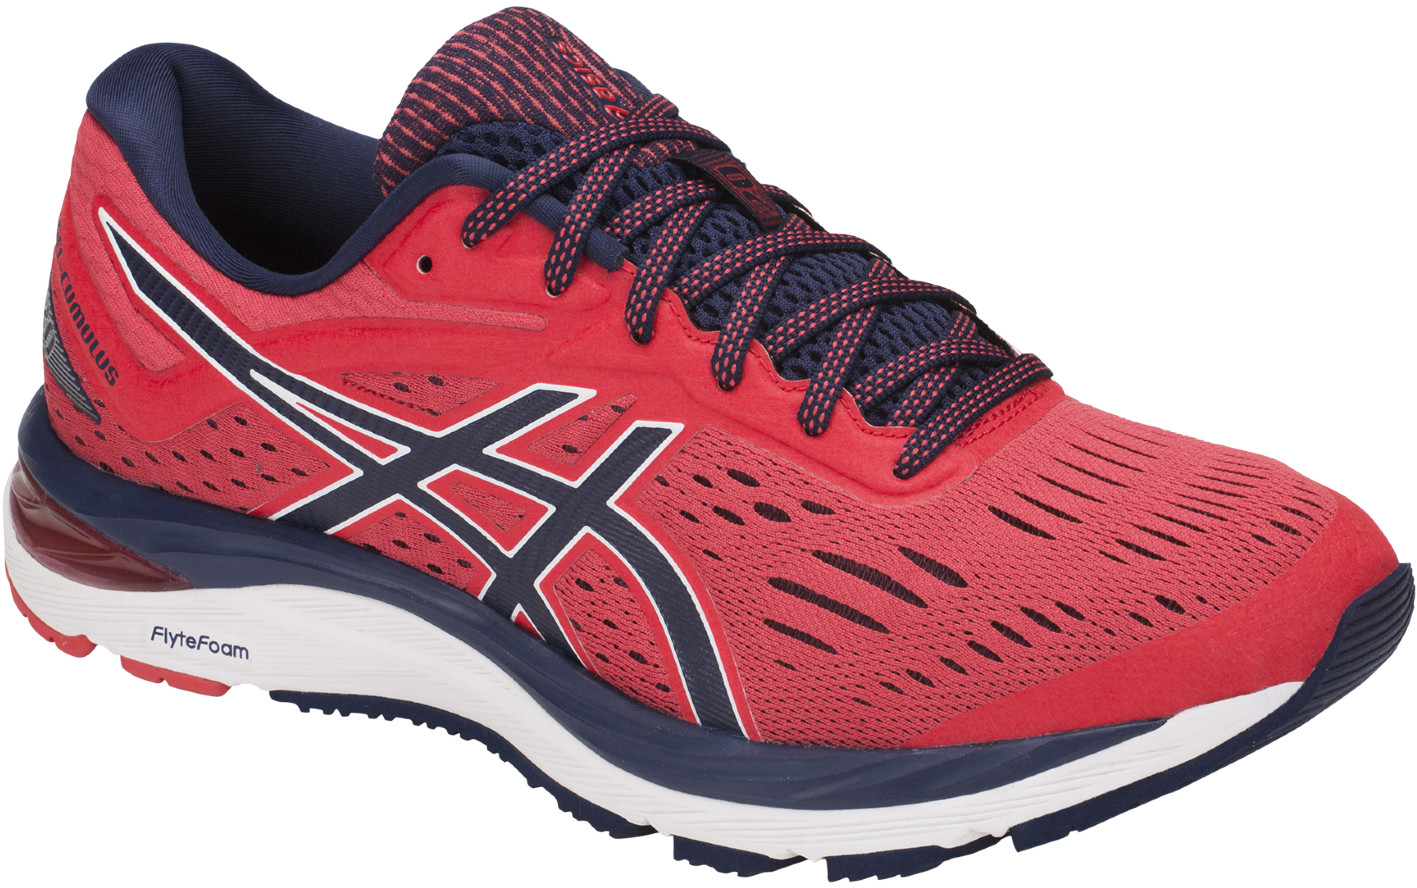 Latini Sport Shop ASICS SCARPA RUNNING UOMO GEL CUMULUS 20. In offerta!  asics Gel-Cumulus 20 Shoes Men Red Alert Peacoat 1920×1920  73ede38fc6d